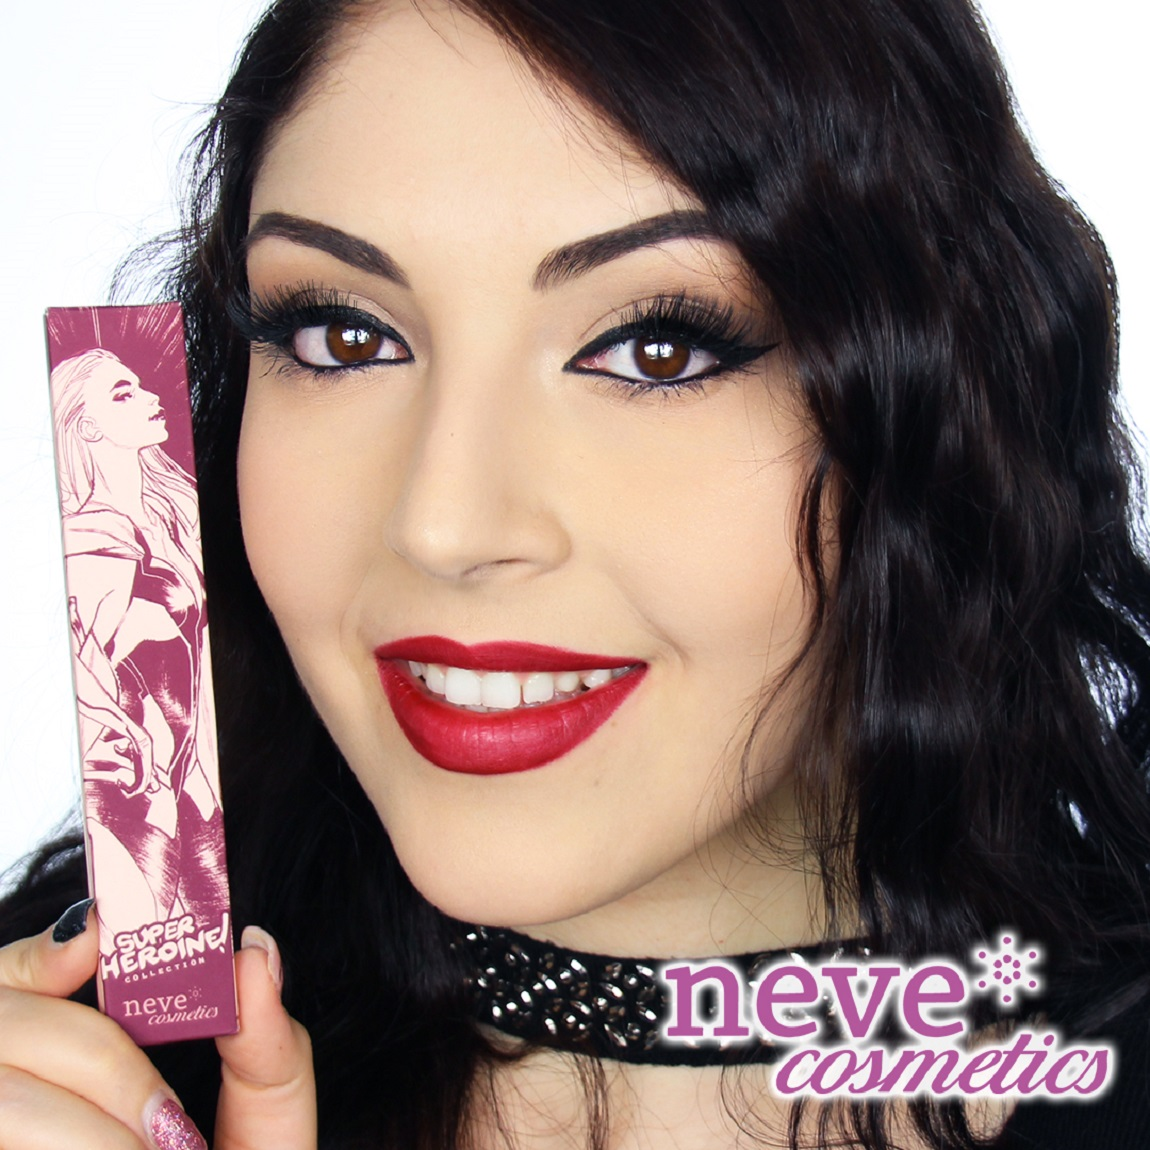 The design that Sara Pichelli created for Neve Cosmetics.